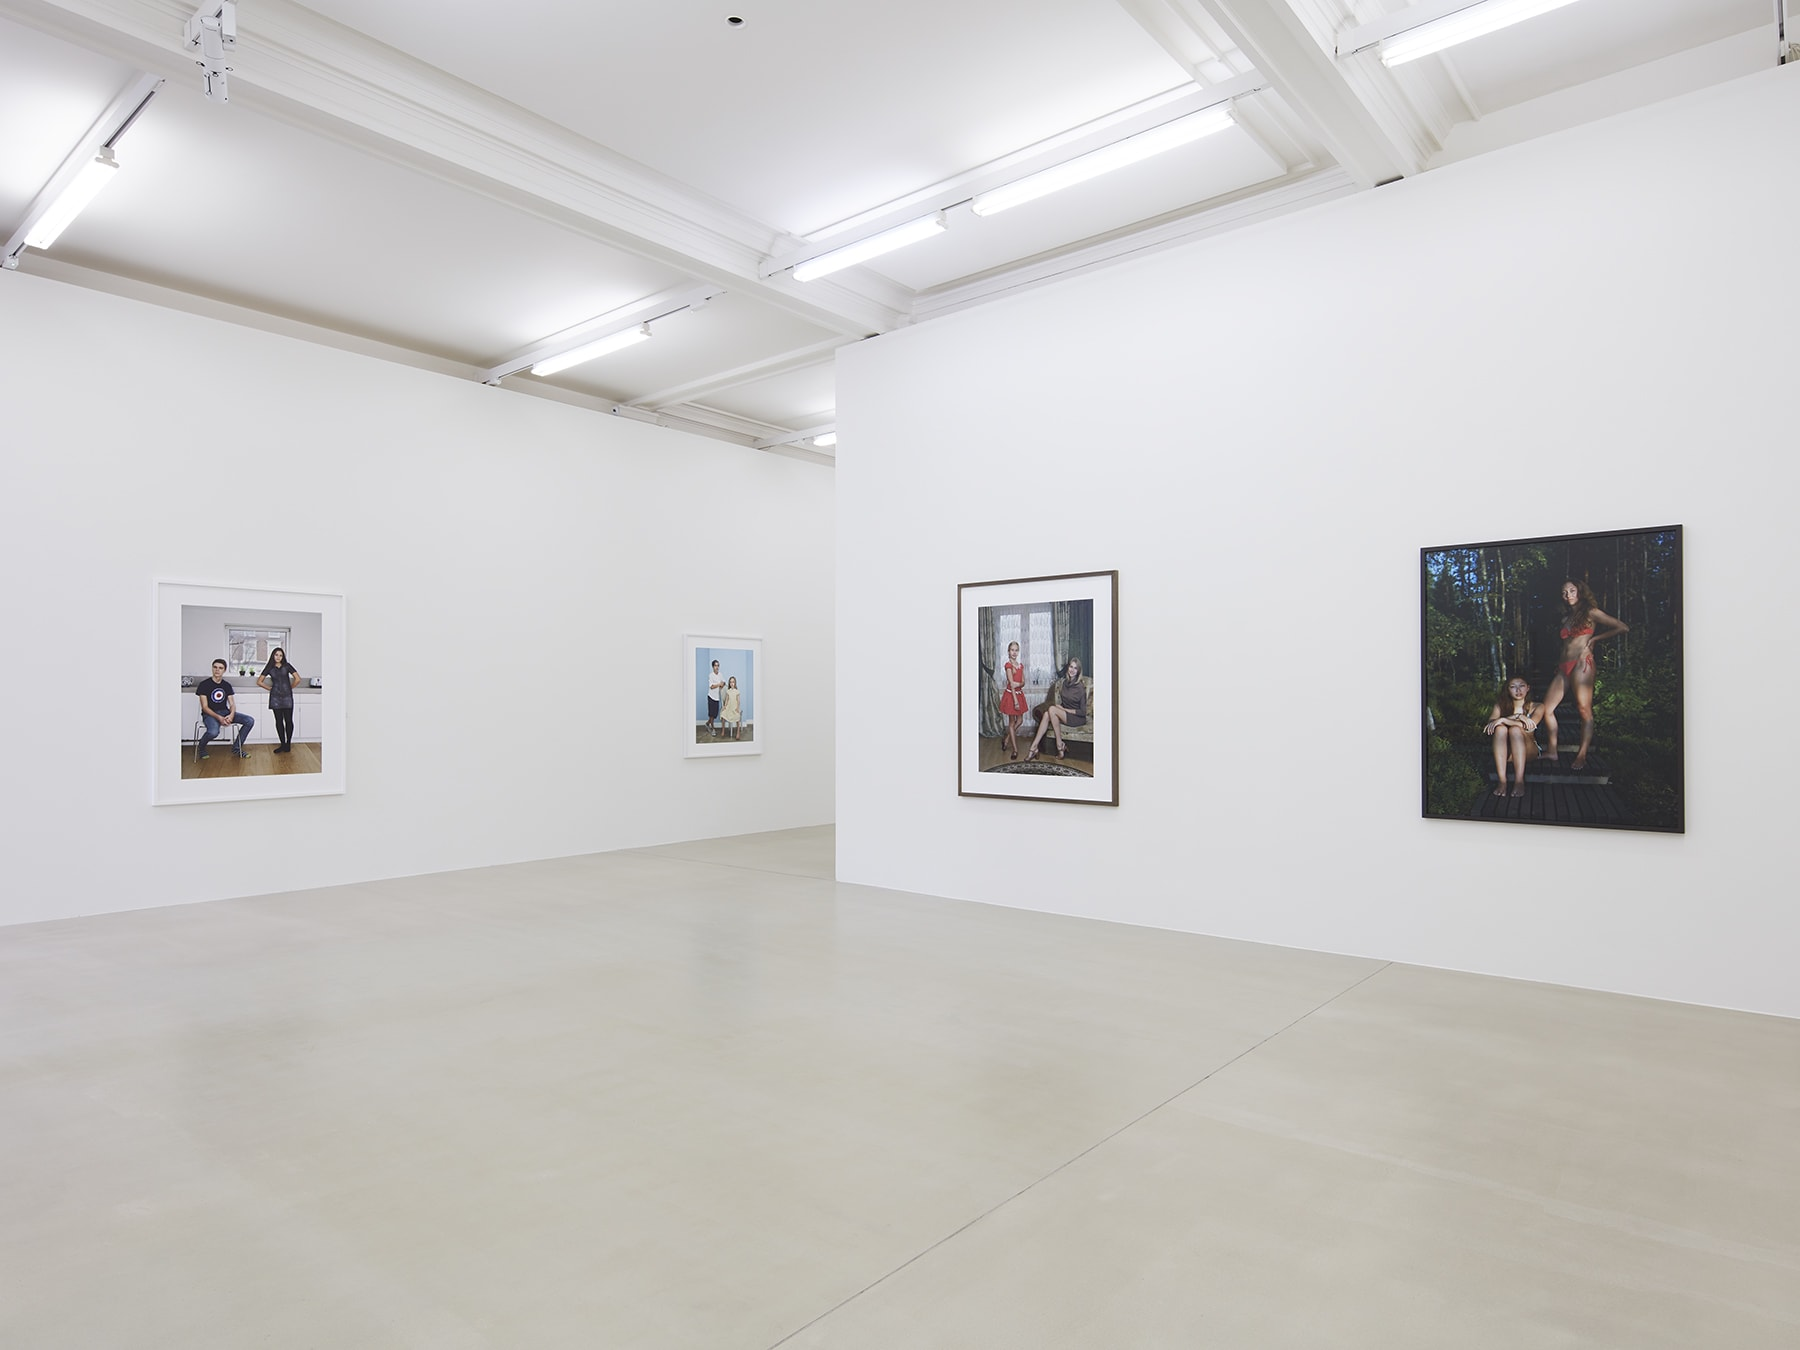 4 framed photographs in Rineke Dijkstra's exhibition at Marian Goodman Gallery, London, March 2020